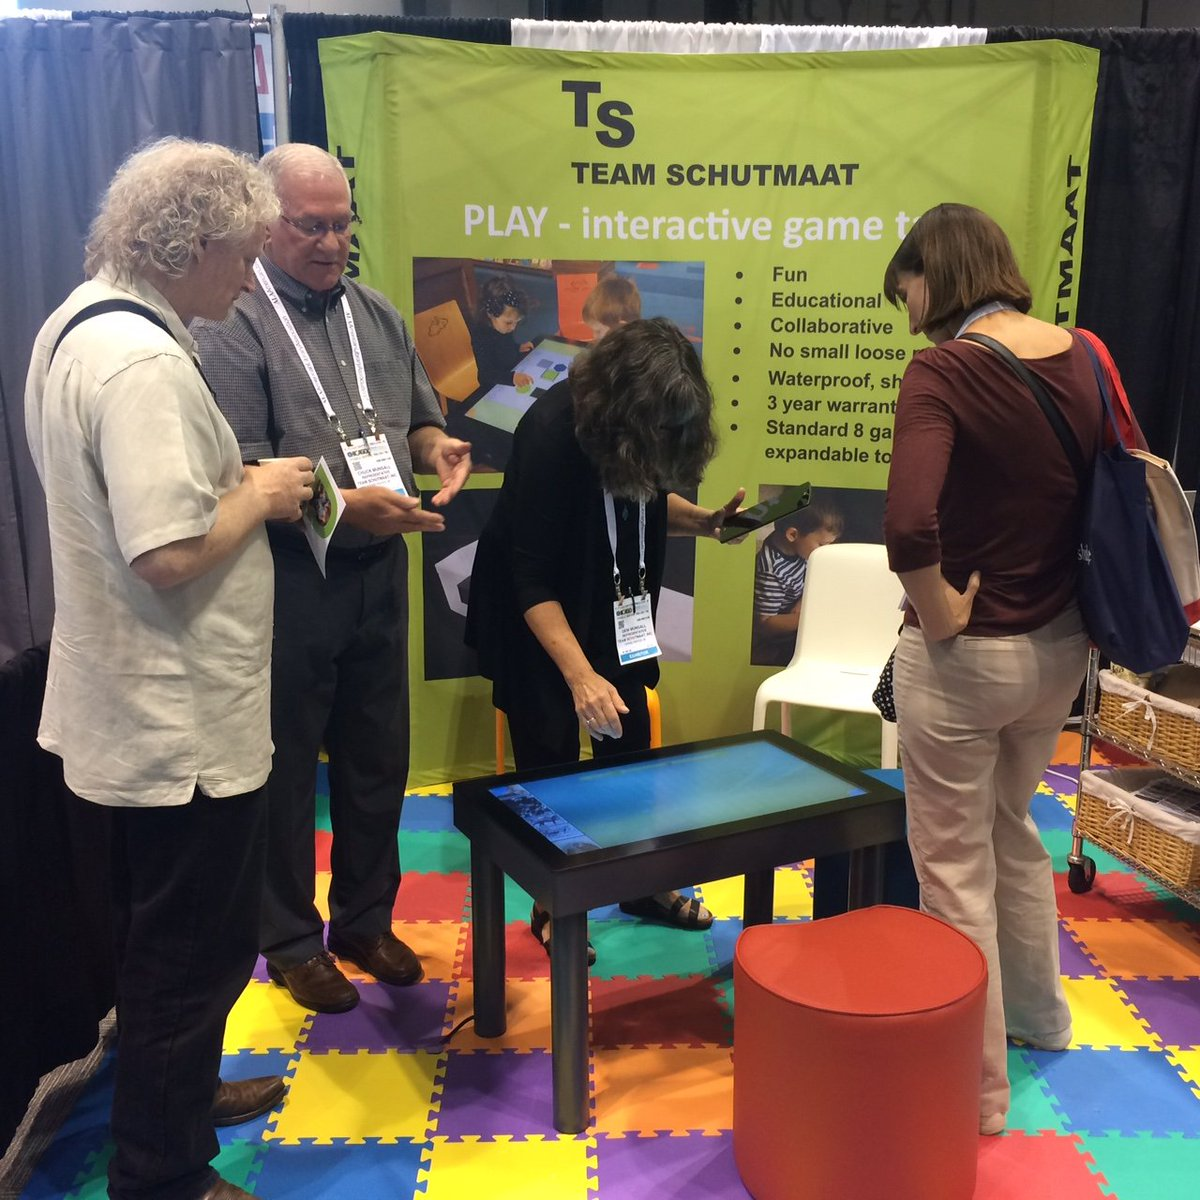 Demo the PLAY #interactive table at @teamschutmaat booth 5035 at #ALA2017 #library #librarian #chicago #edtech<br>http://pic.twitter.com/HFAtQClOlQ